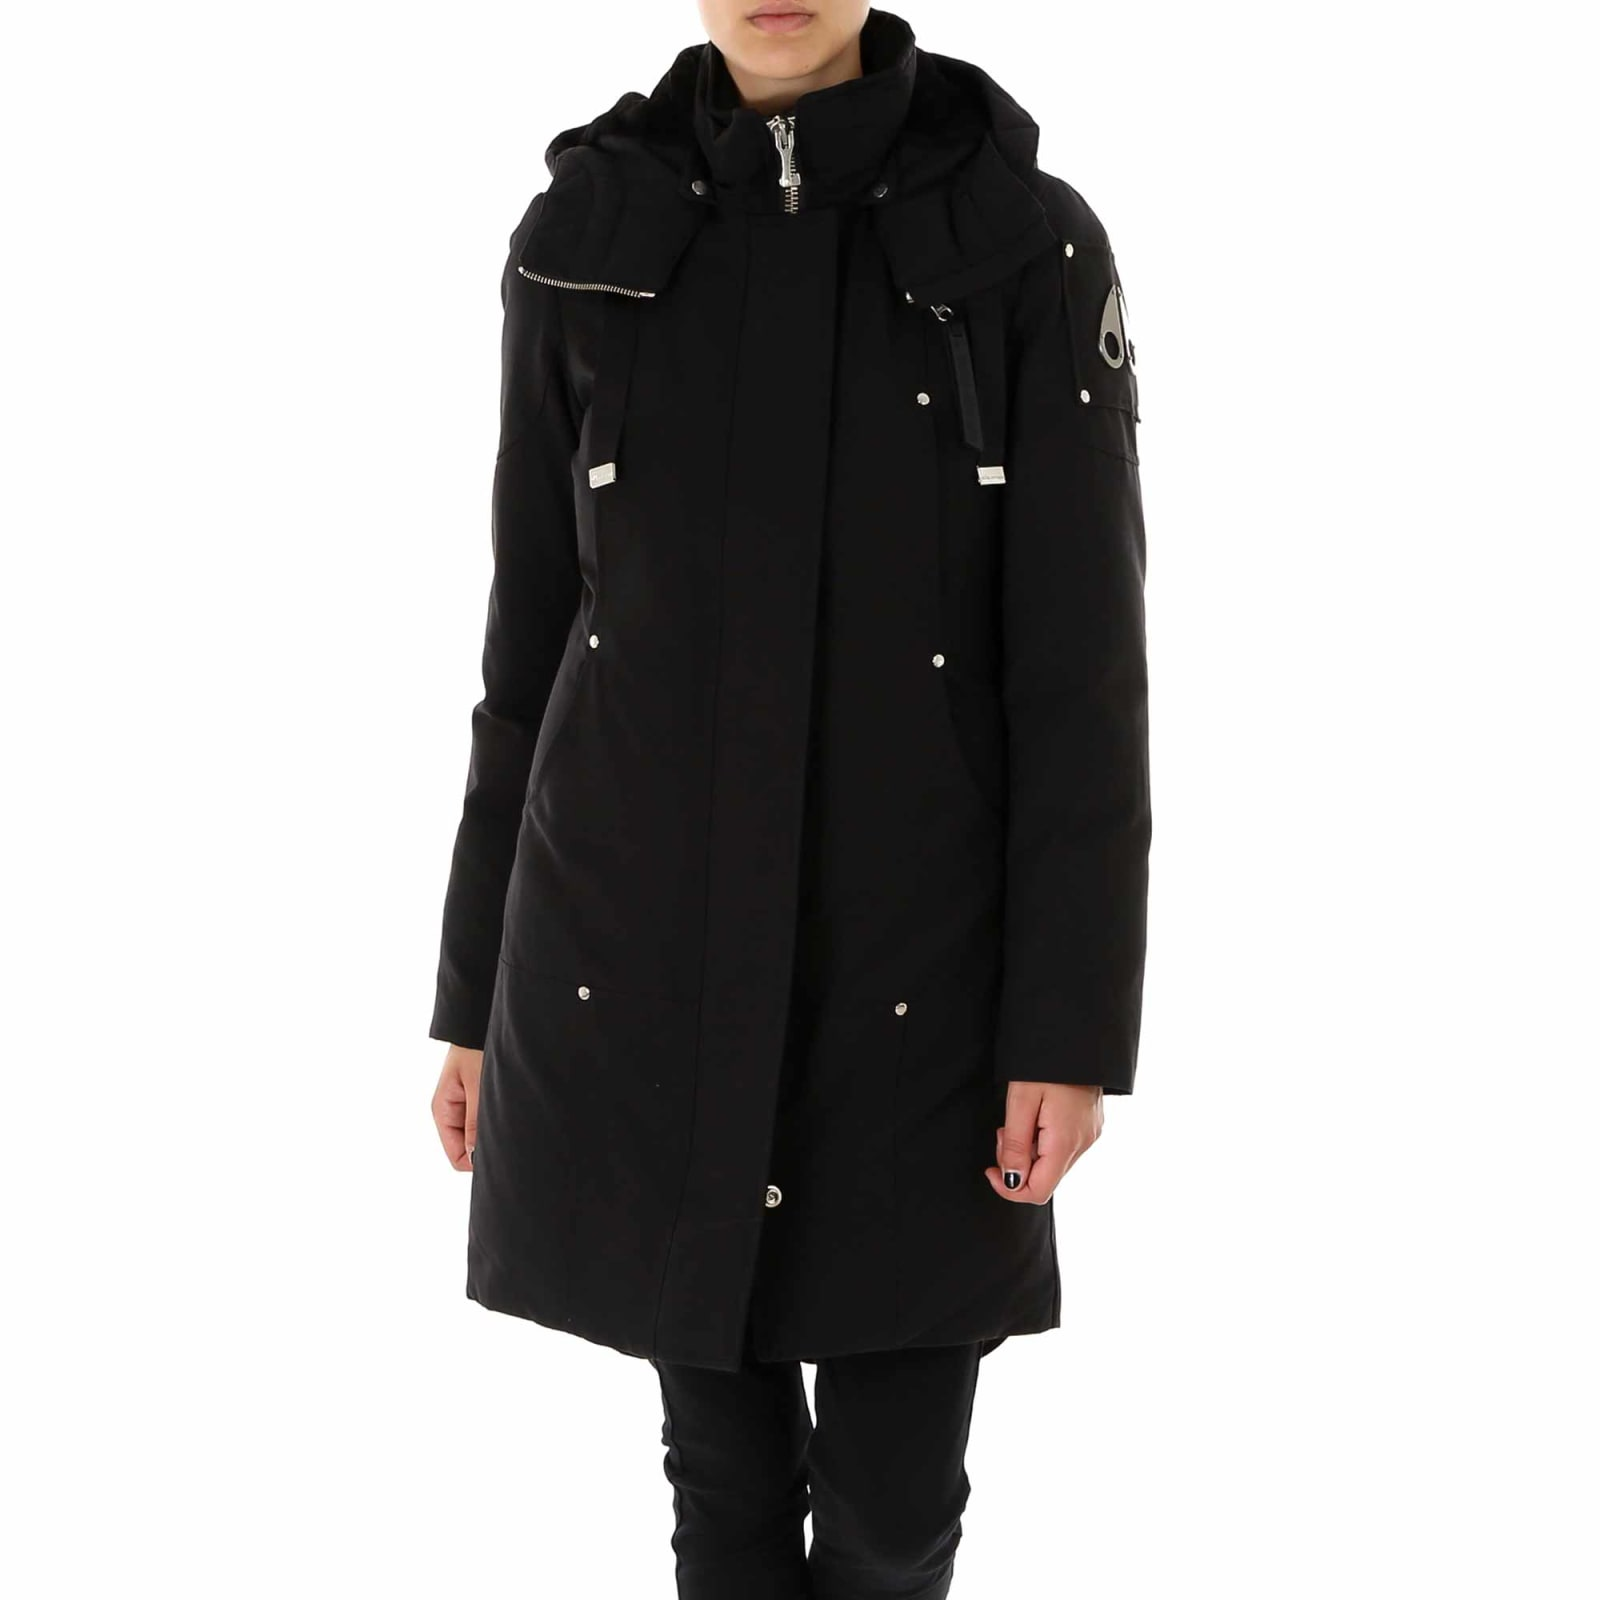 Photo of  Moose Knuckles Longue Rive Parka Jacket- shop Moose Knuckles jackets online sales